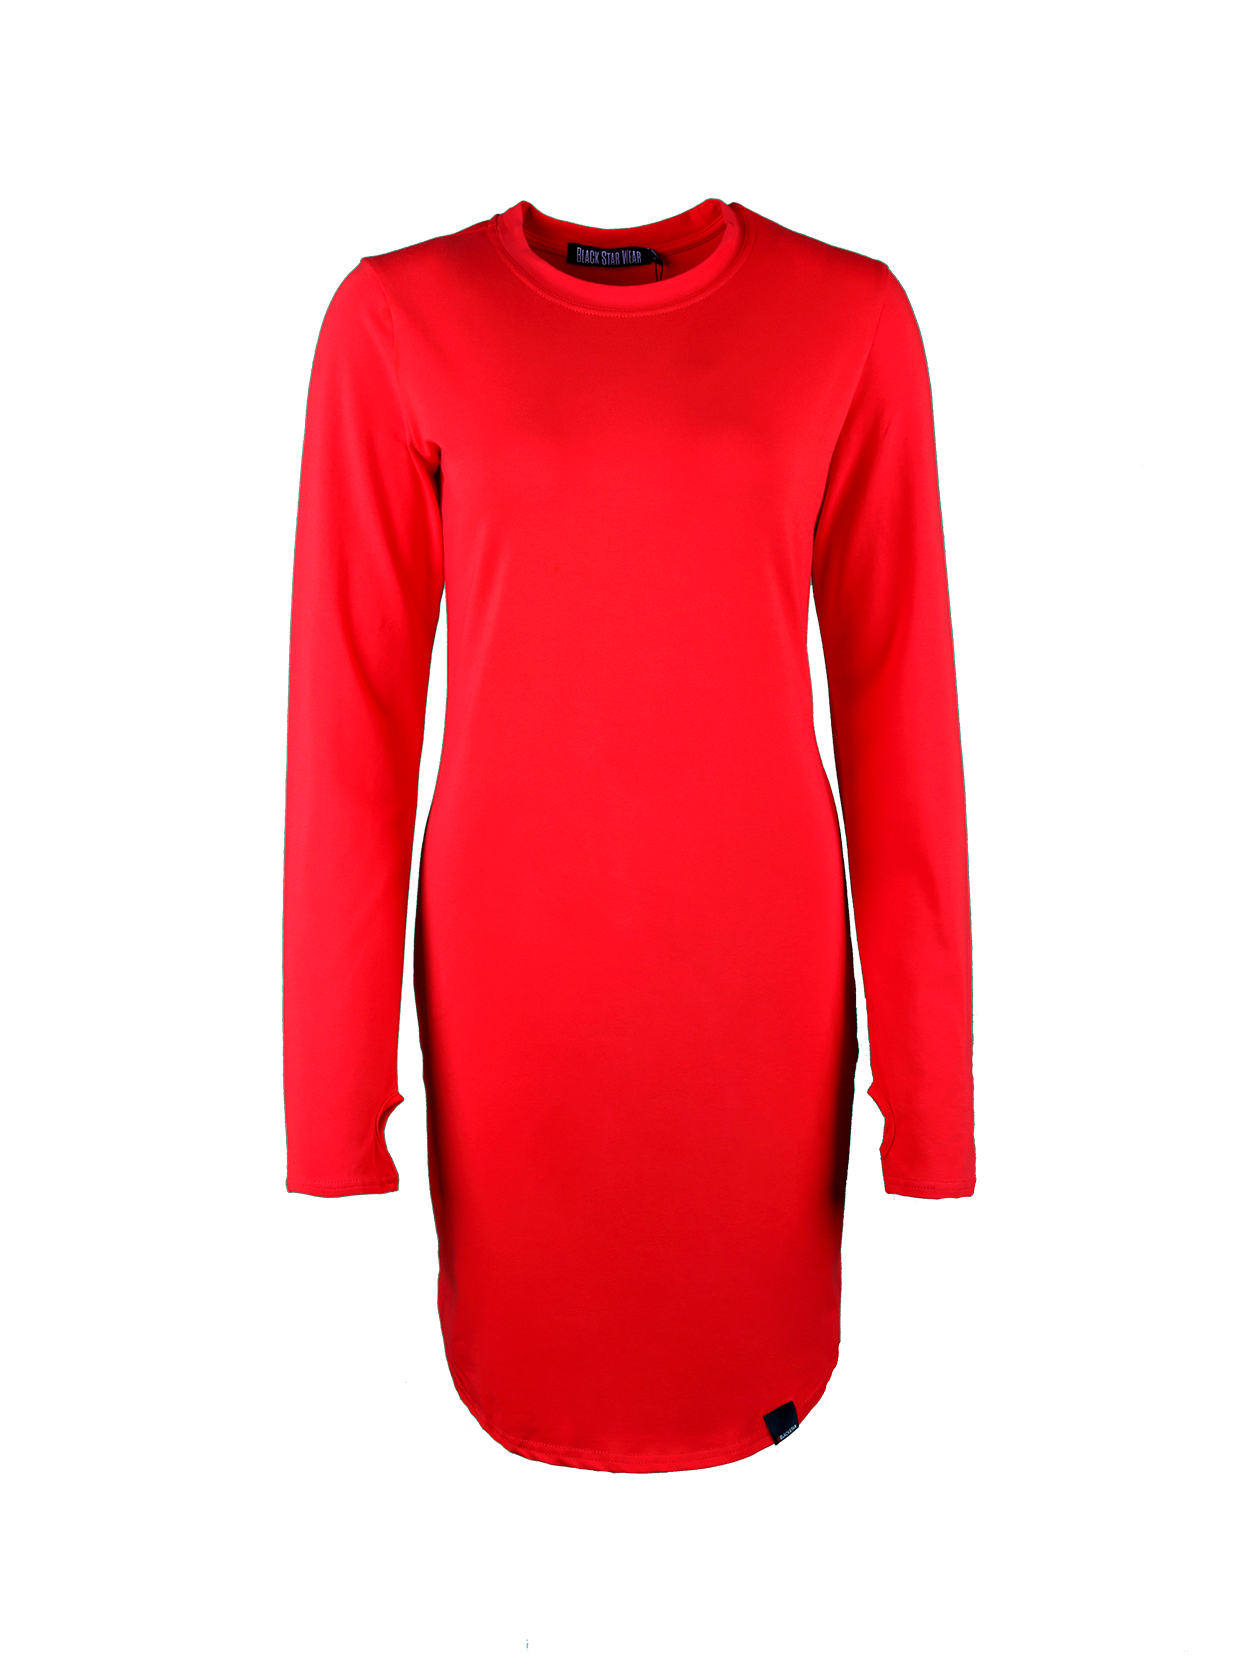 Womens dress TeaseWomens dress by Black Star Wear. Straight fit, o-neck, lond sleeves with a thumb hole. Assimetrical round cut. Small black label with #blackstar on the front. Natural cotton (95%) and lycra (5%) blend. Avaliable in red and khaki.<br><br>size: L<br>color: Red<br>gender: female